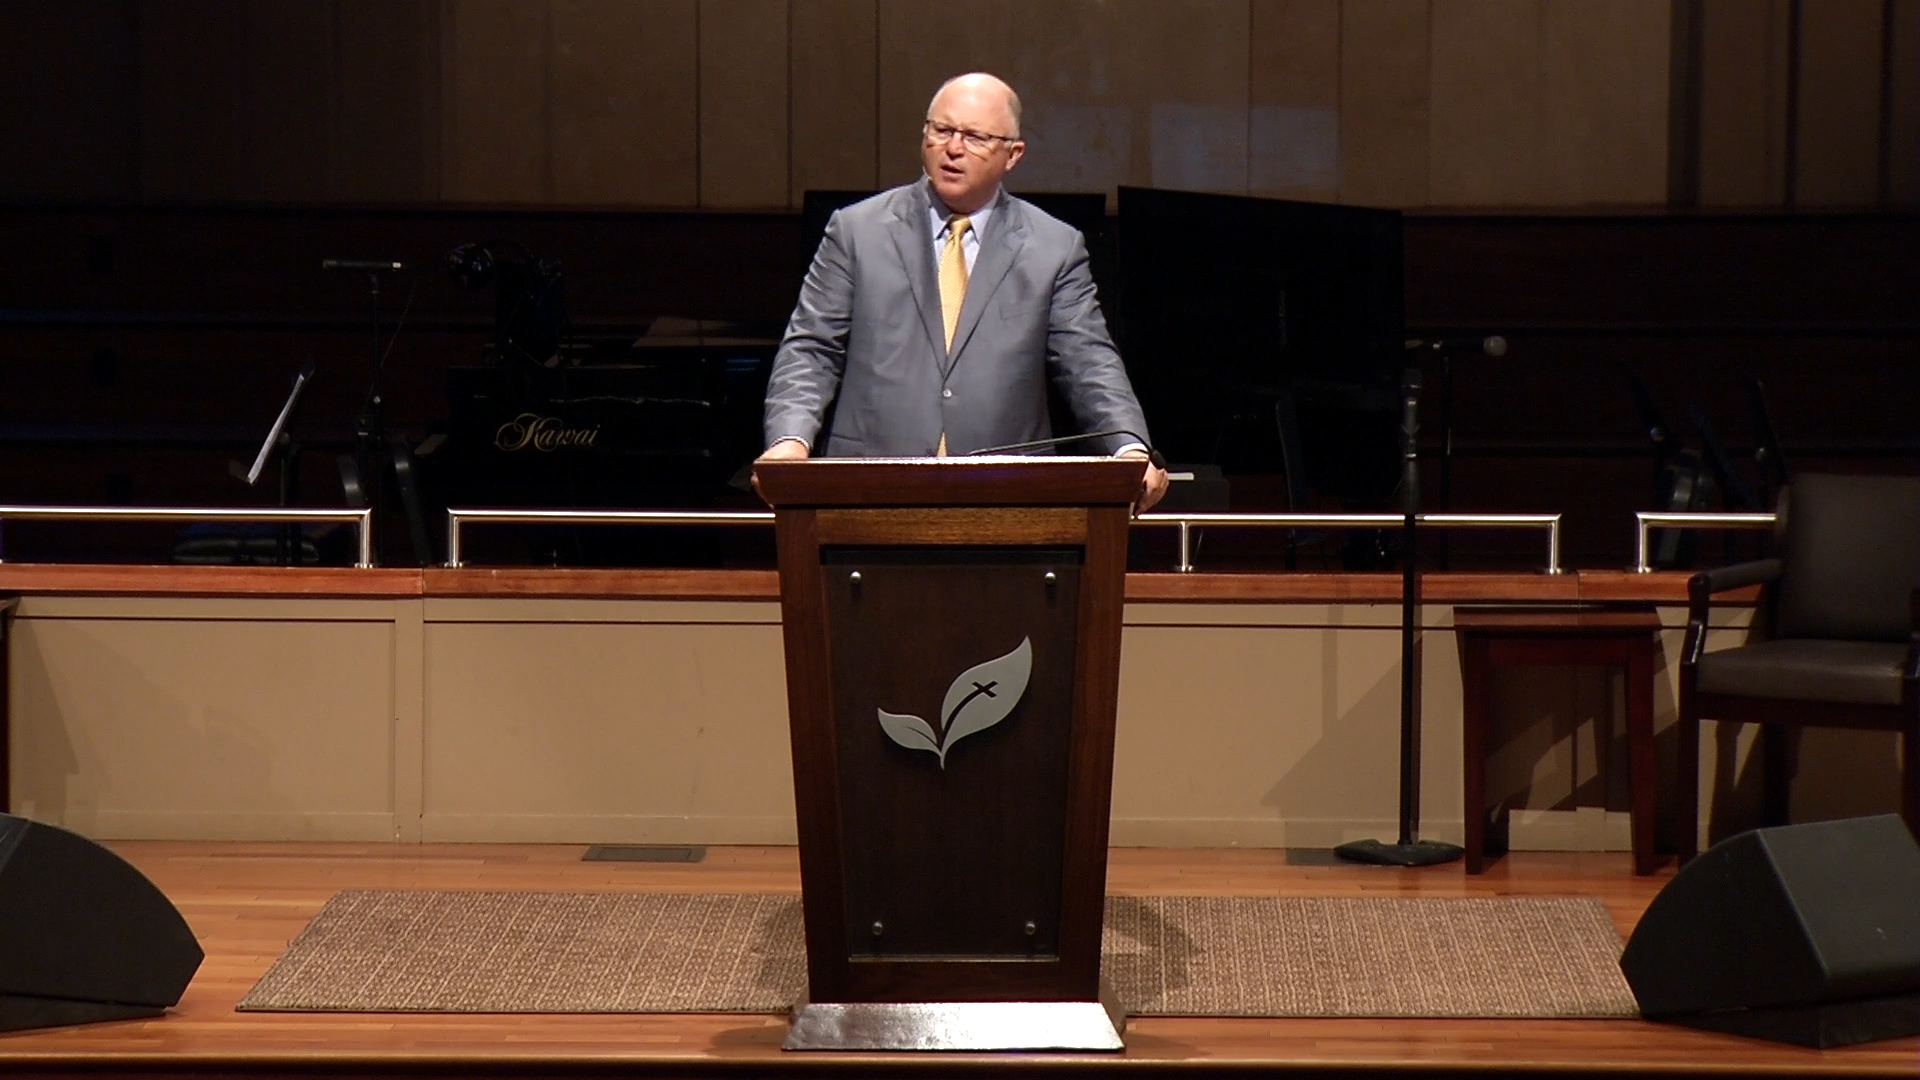 Pastor Paul Chappell: Deciding to Trust